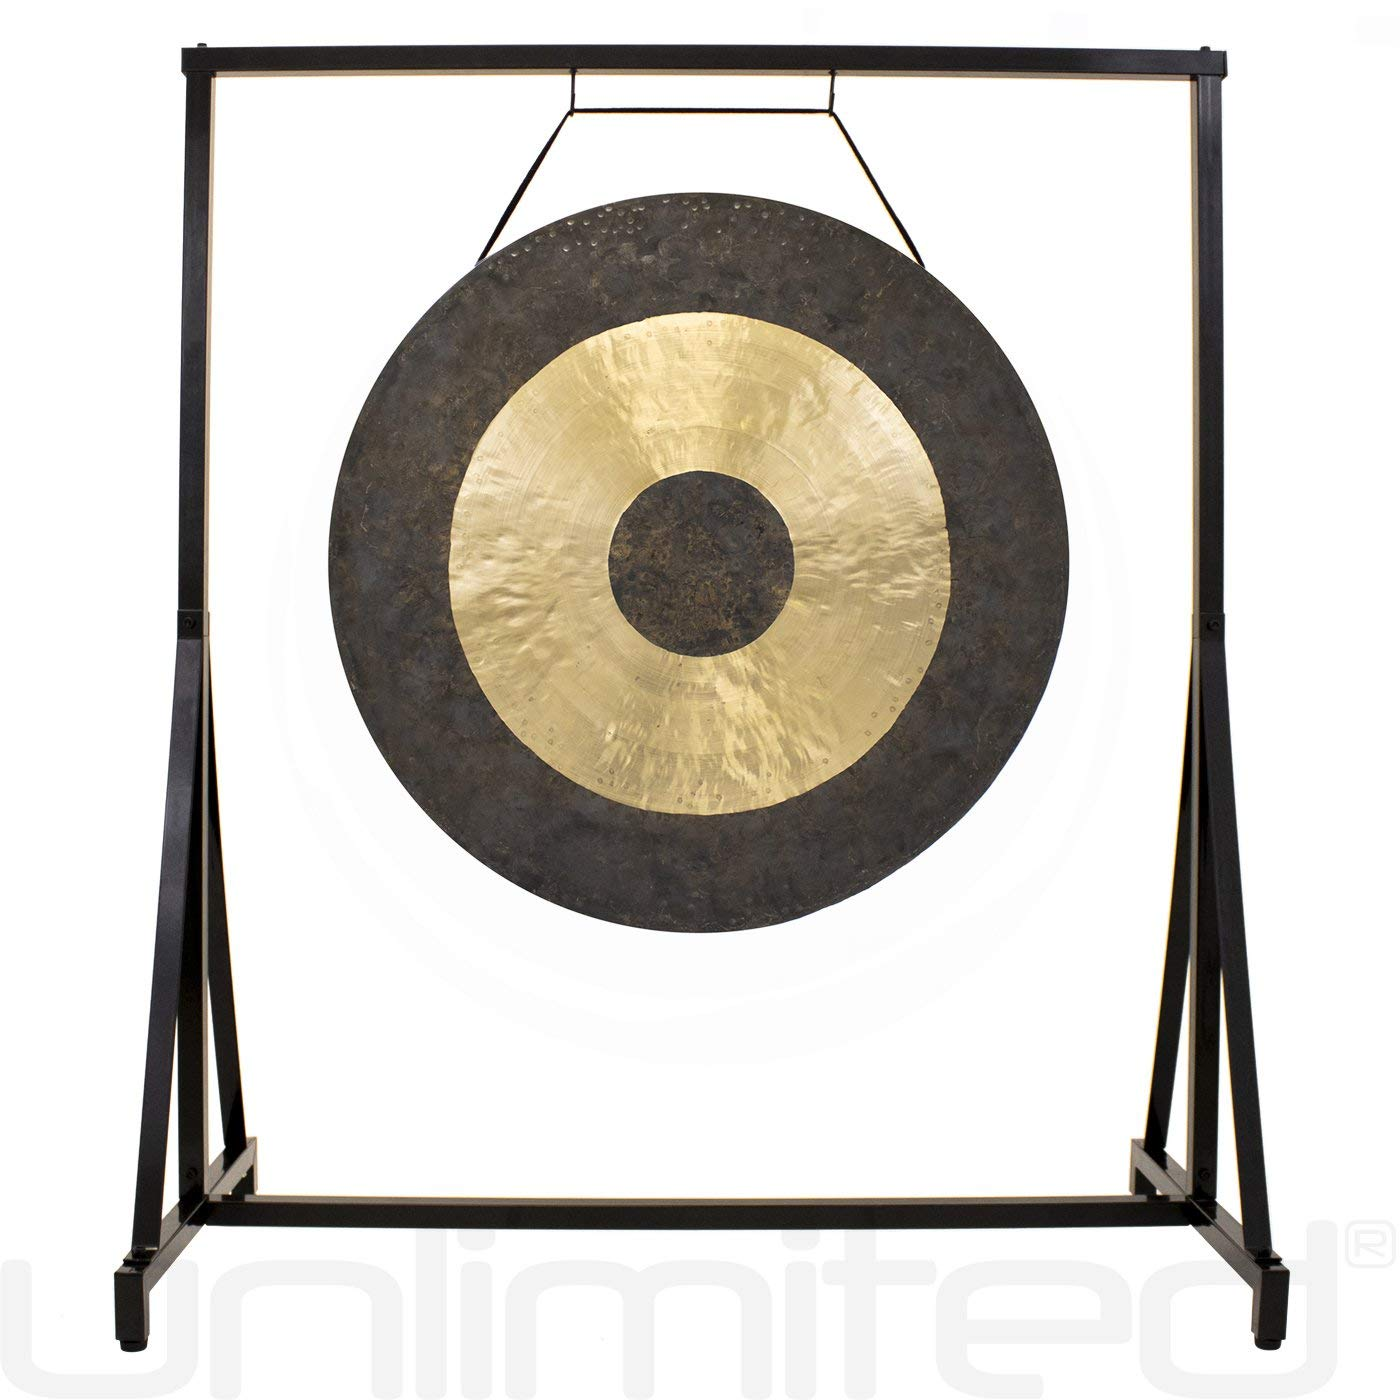 30'' to 40'' Gongs on the Everyday Miracle Gong Stand